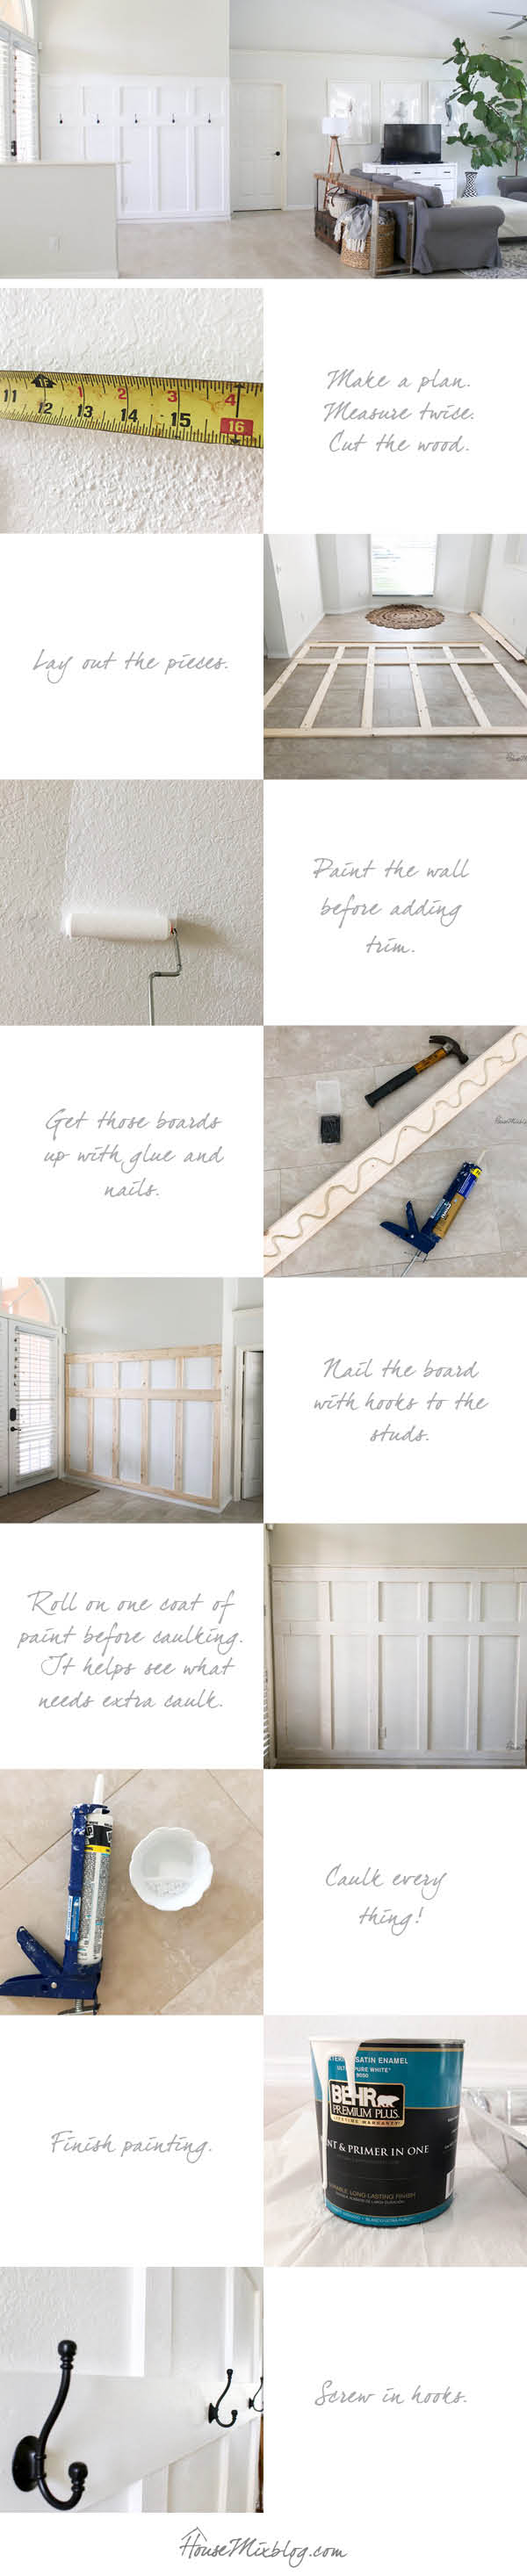 Board and batten wall DIY - moulding panels wainscotting board and batten moulding wall entryway mudroom diy tutorial how to